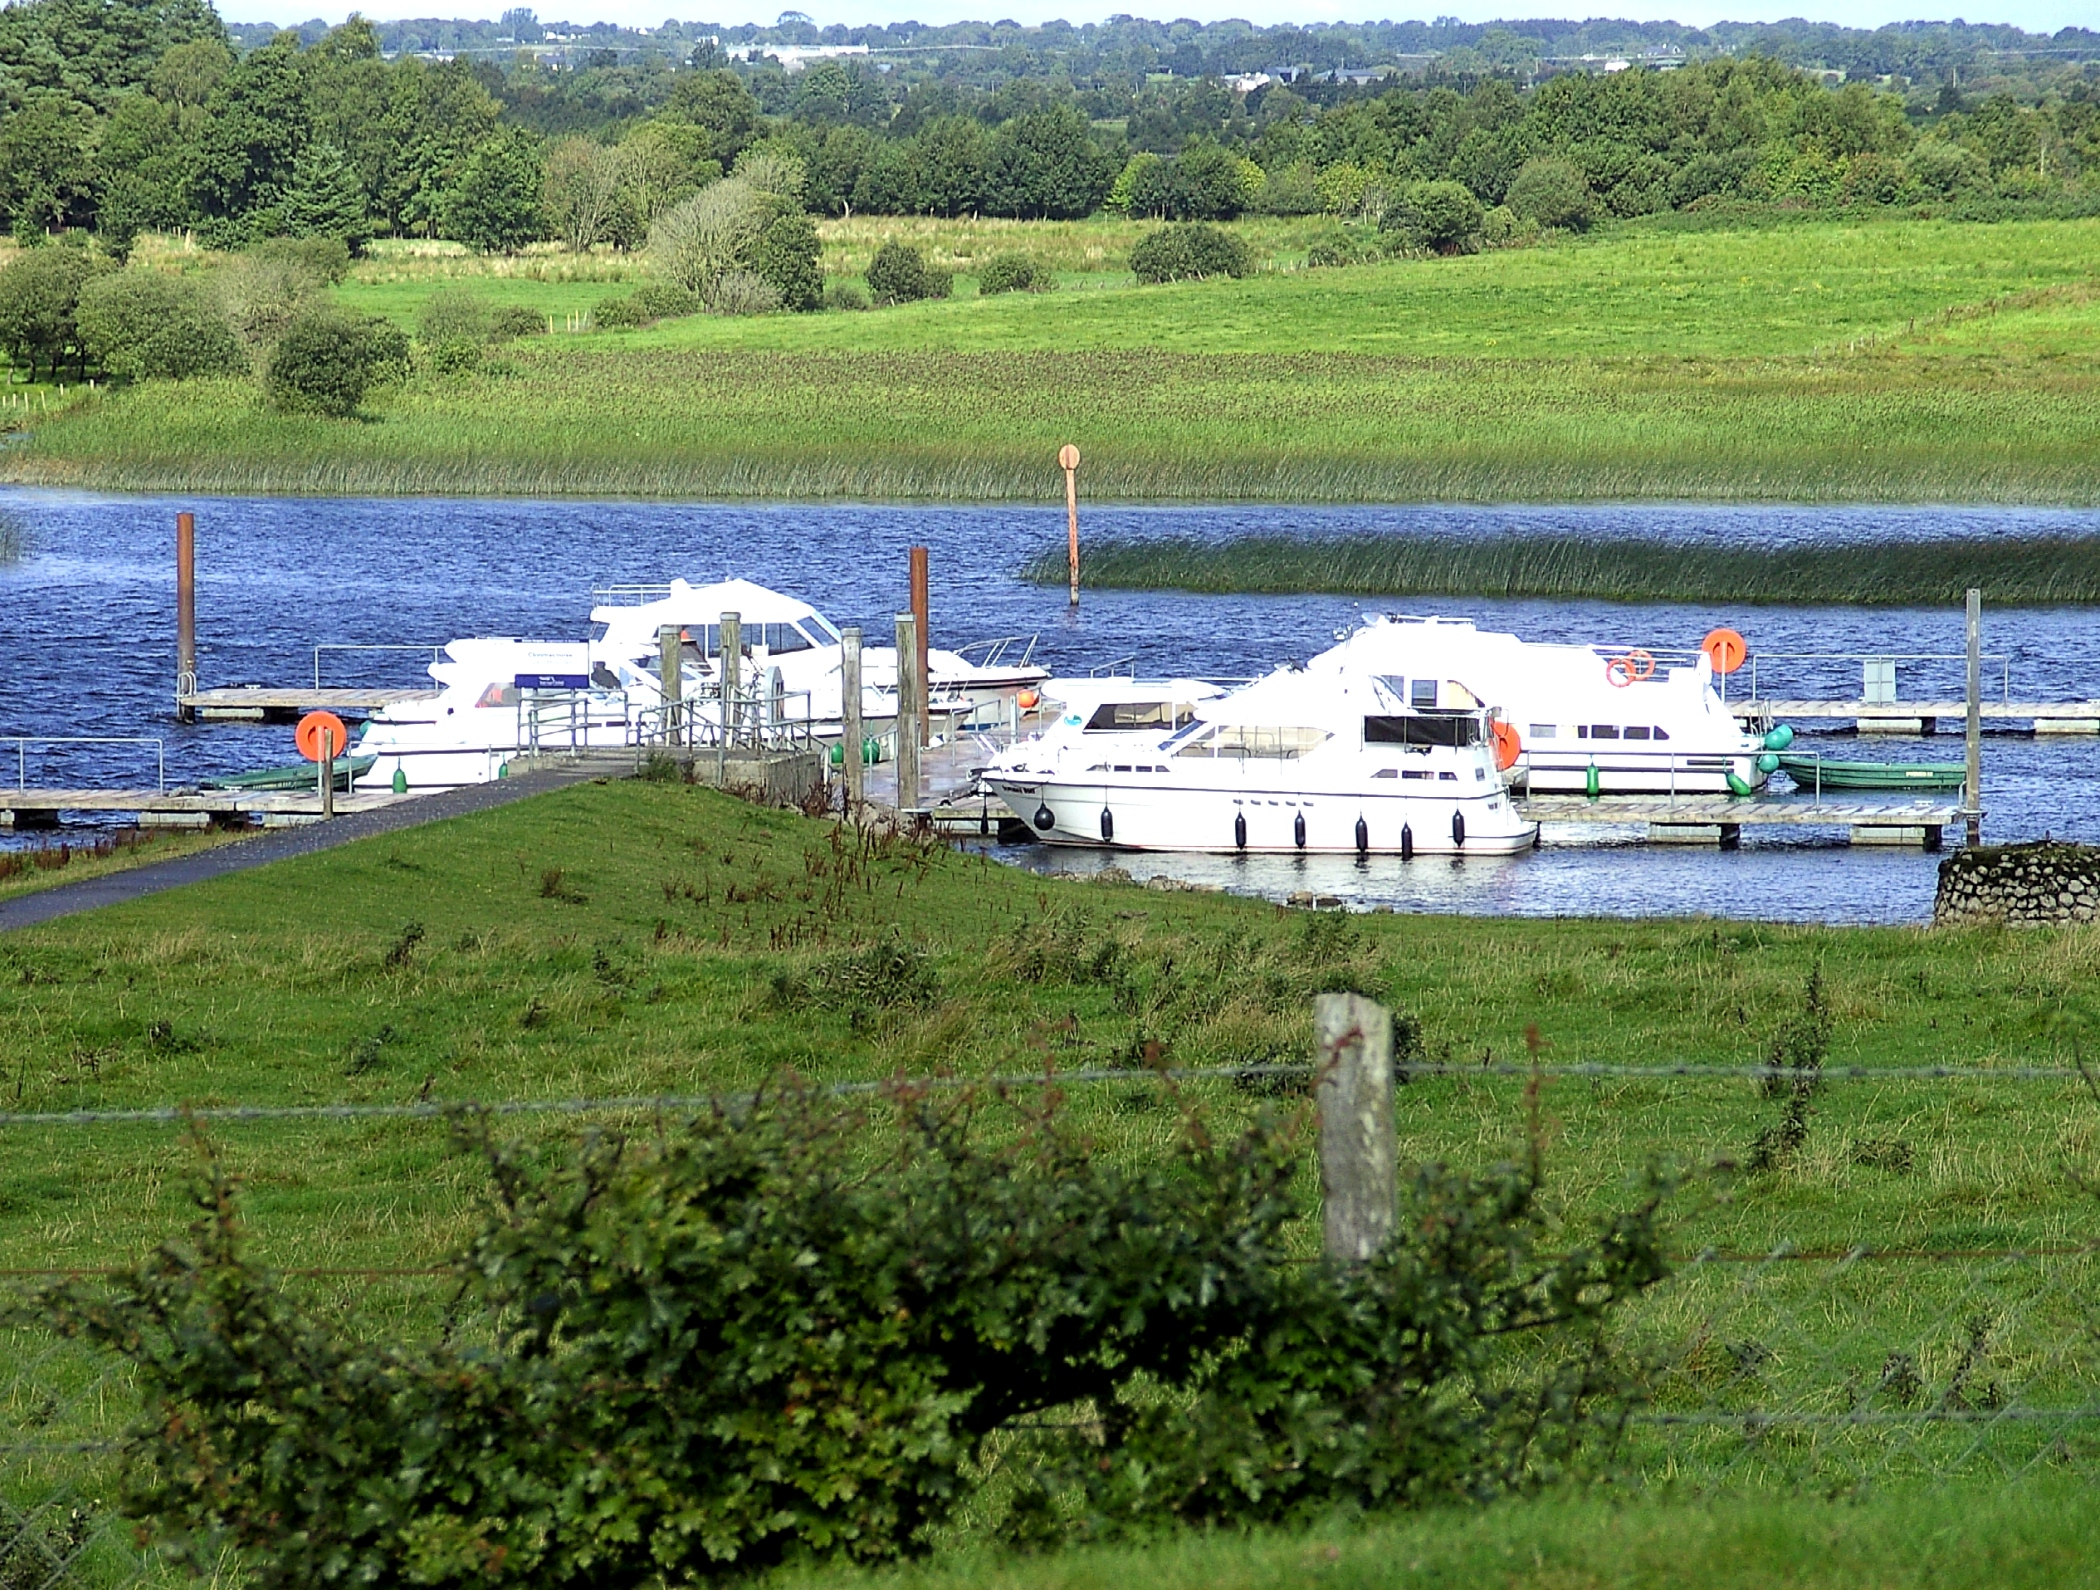 File:River Shannon in Ireland.JPG  Wikimedia Commons